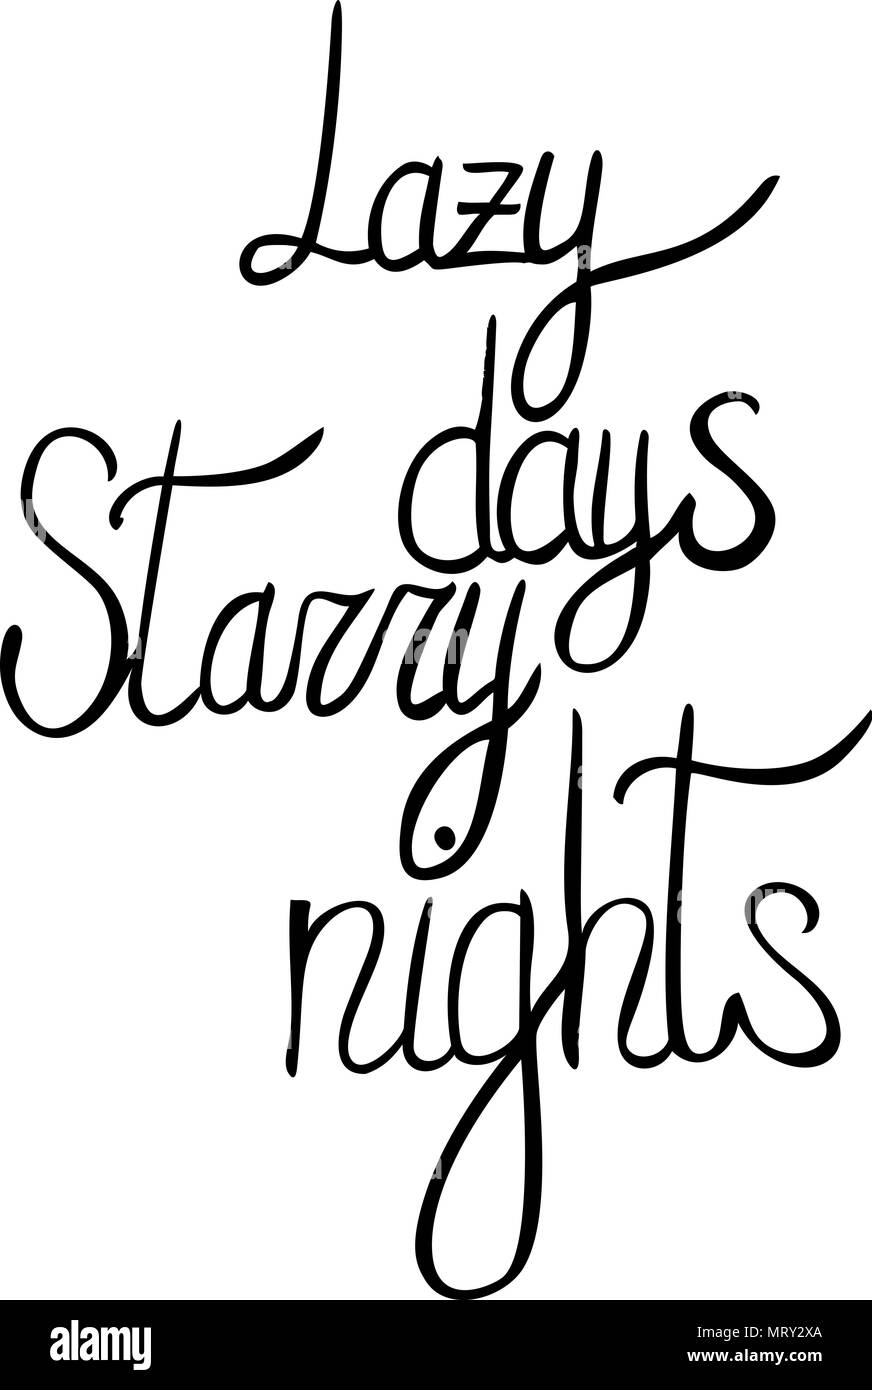 vector hand written summer lettering - lazy days, starry nights - Stock Image